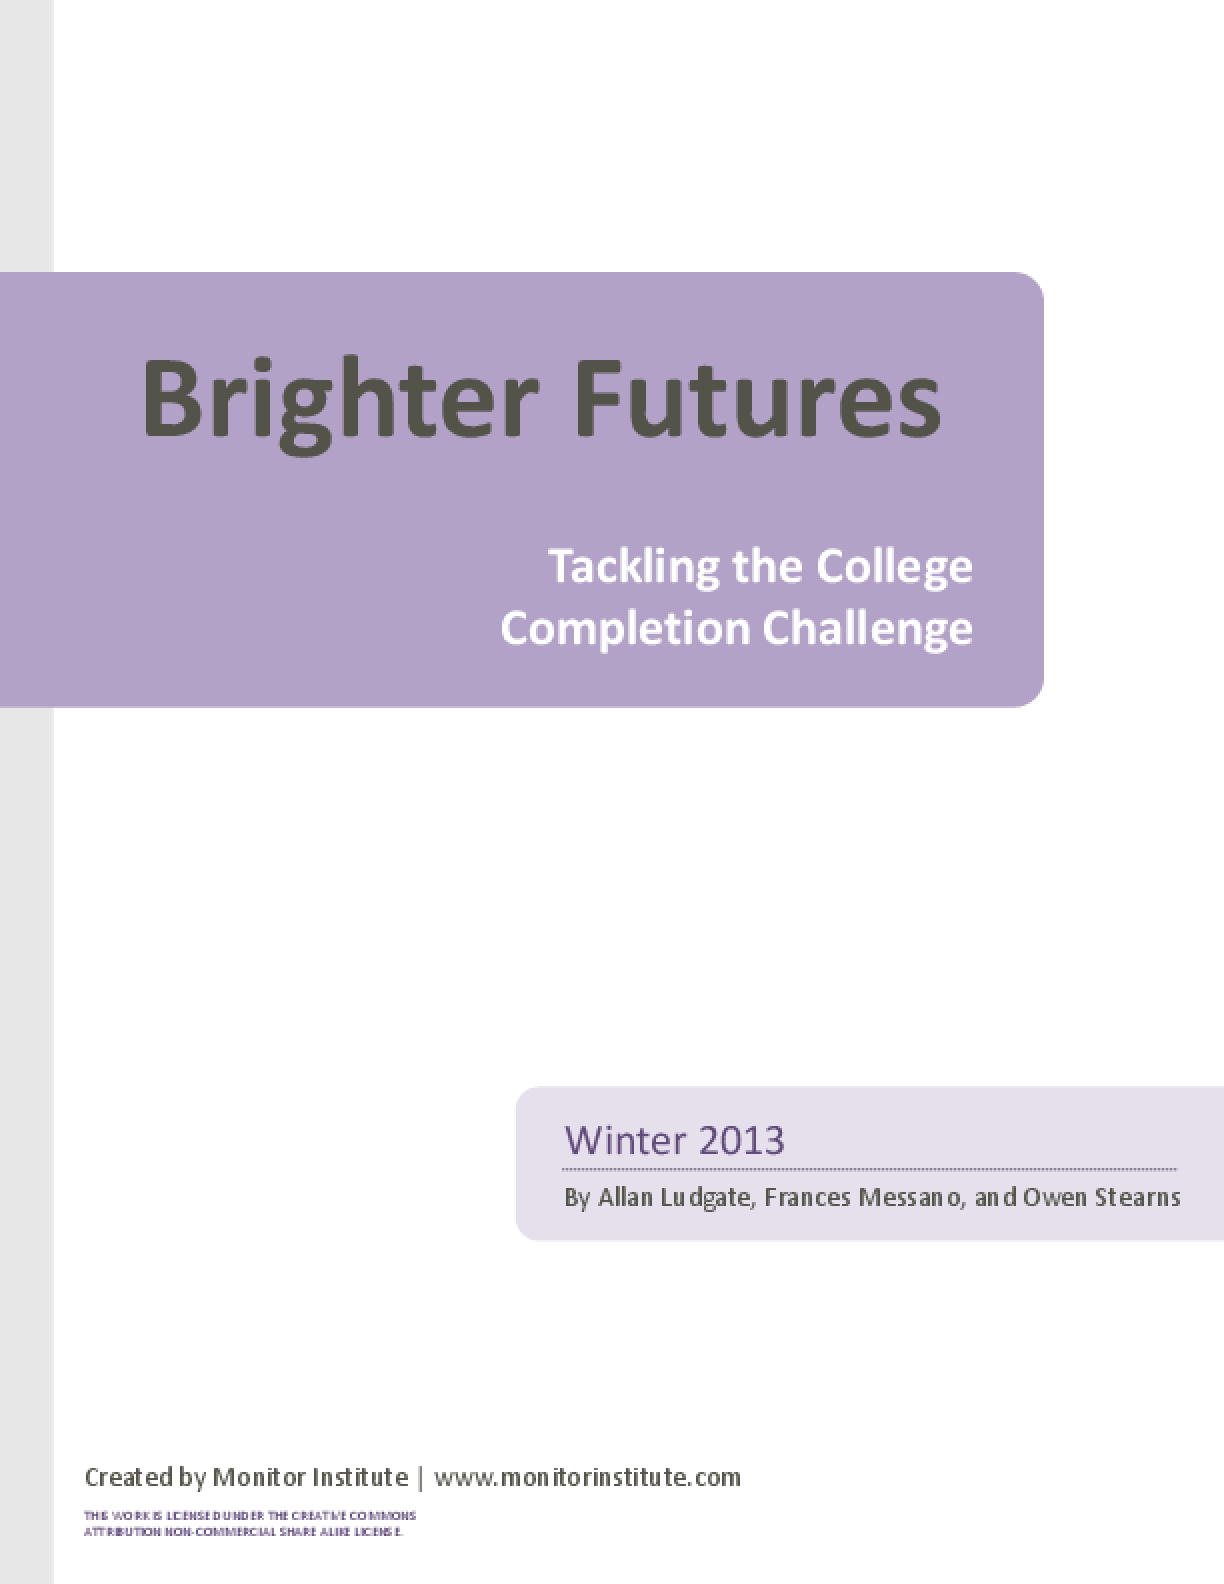 Brighter Futures: Tackling the College Completion Challenge